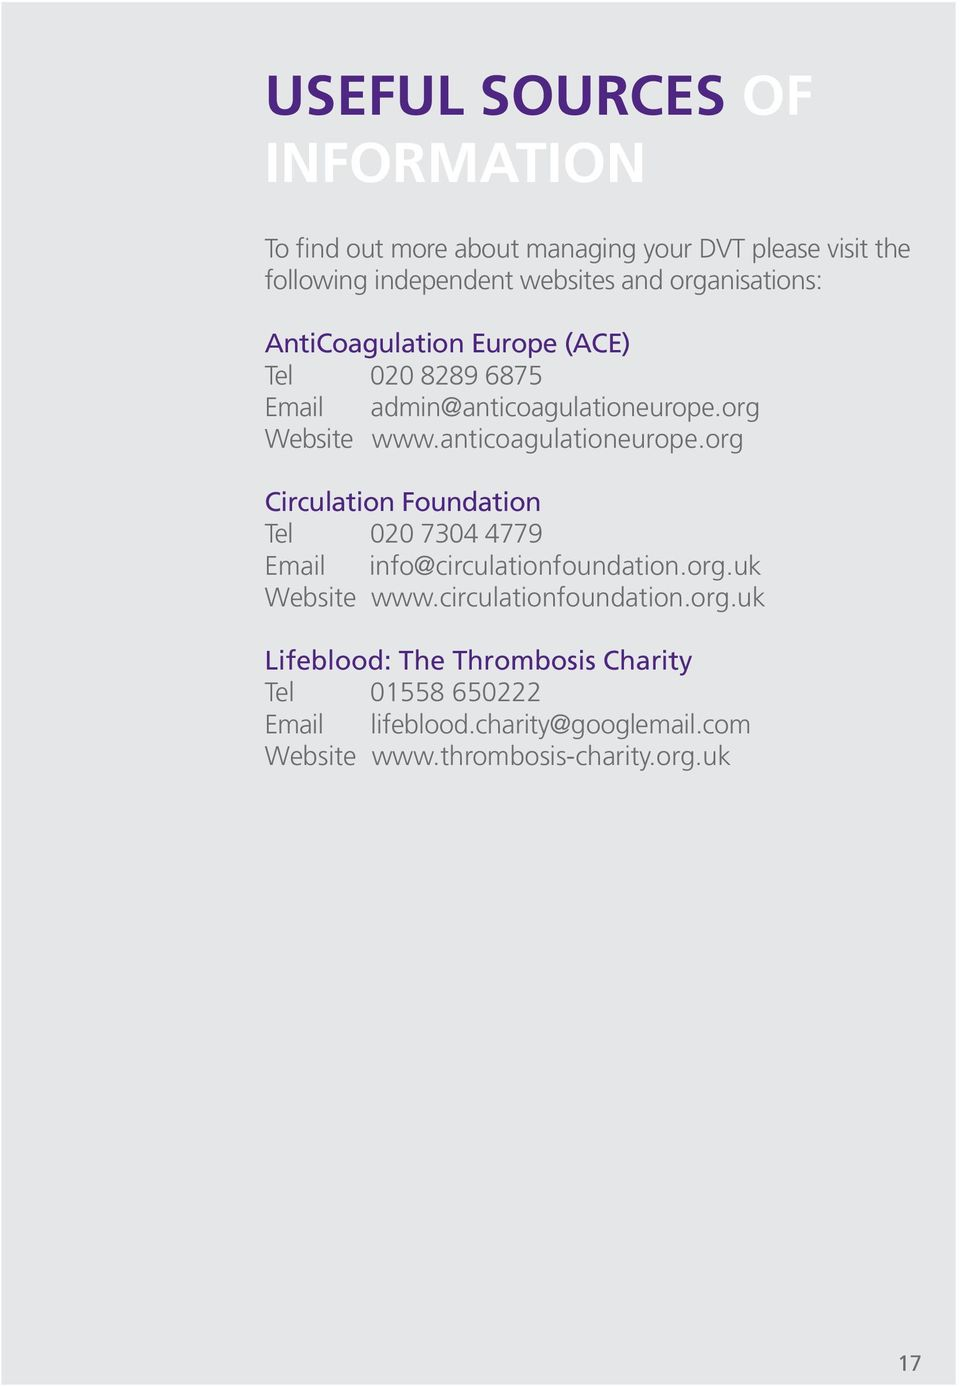 anticoagulationeurope.org Circulation Foundation Tel 020 7304 4779 Email info@circulationfoundation.org.uk Website www.